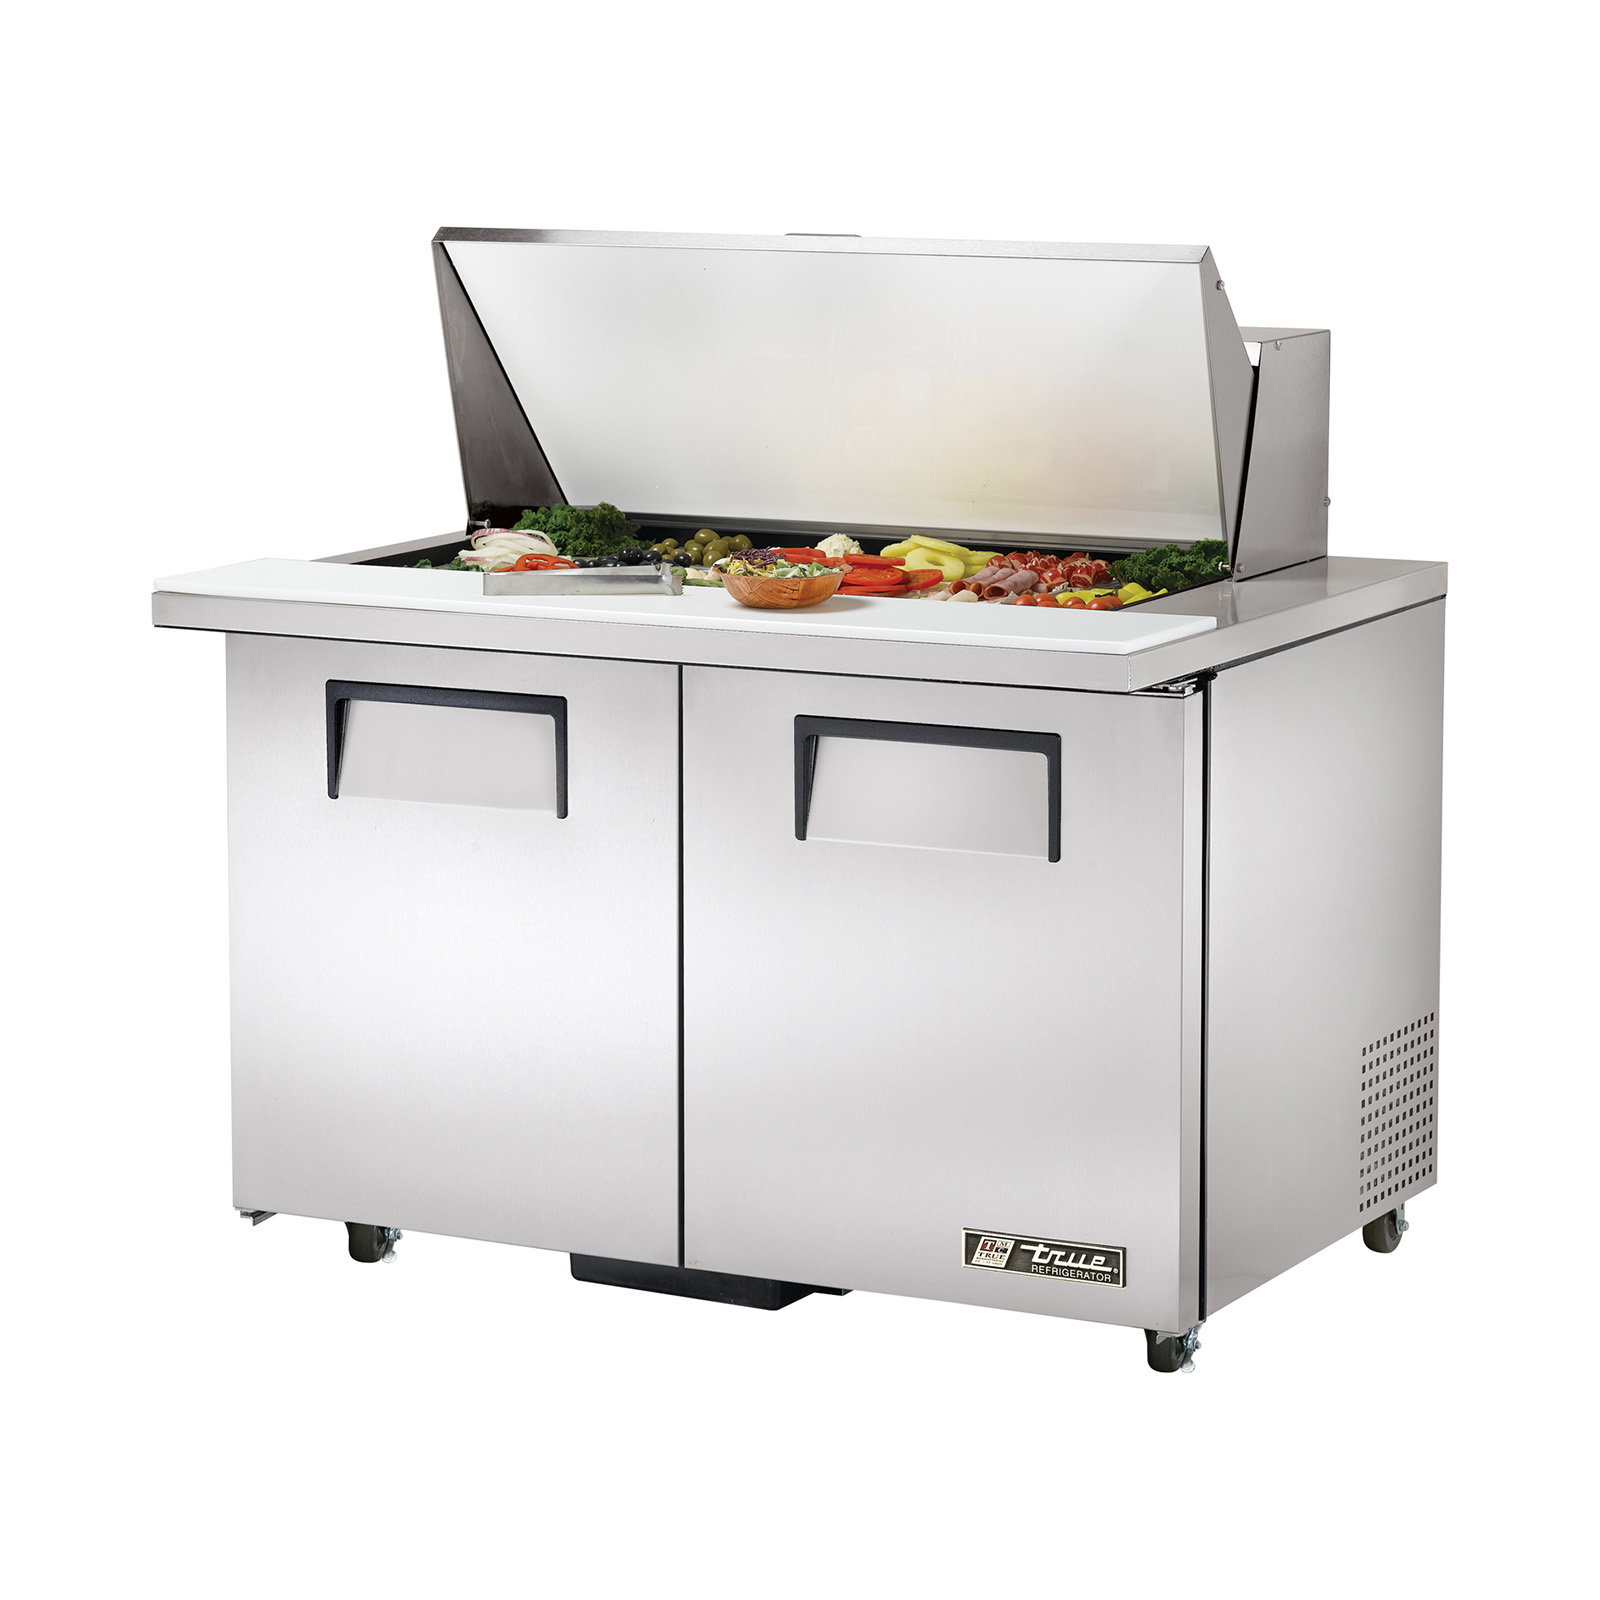 TSSU-48-18M-B-ADA True - ADA Compliant Mega Top Sandwich/Salad Unit (18) 1/6 size (4